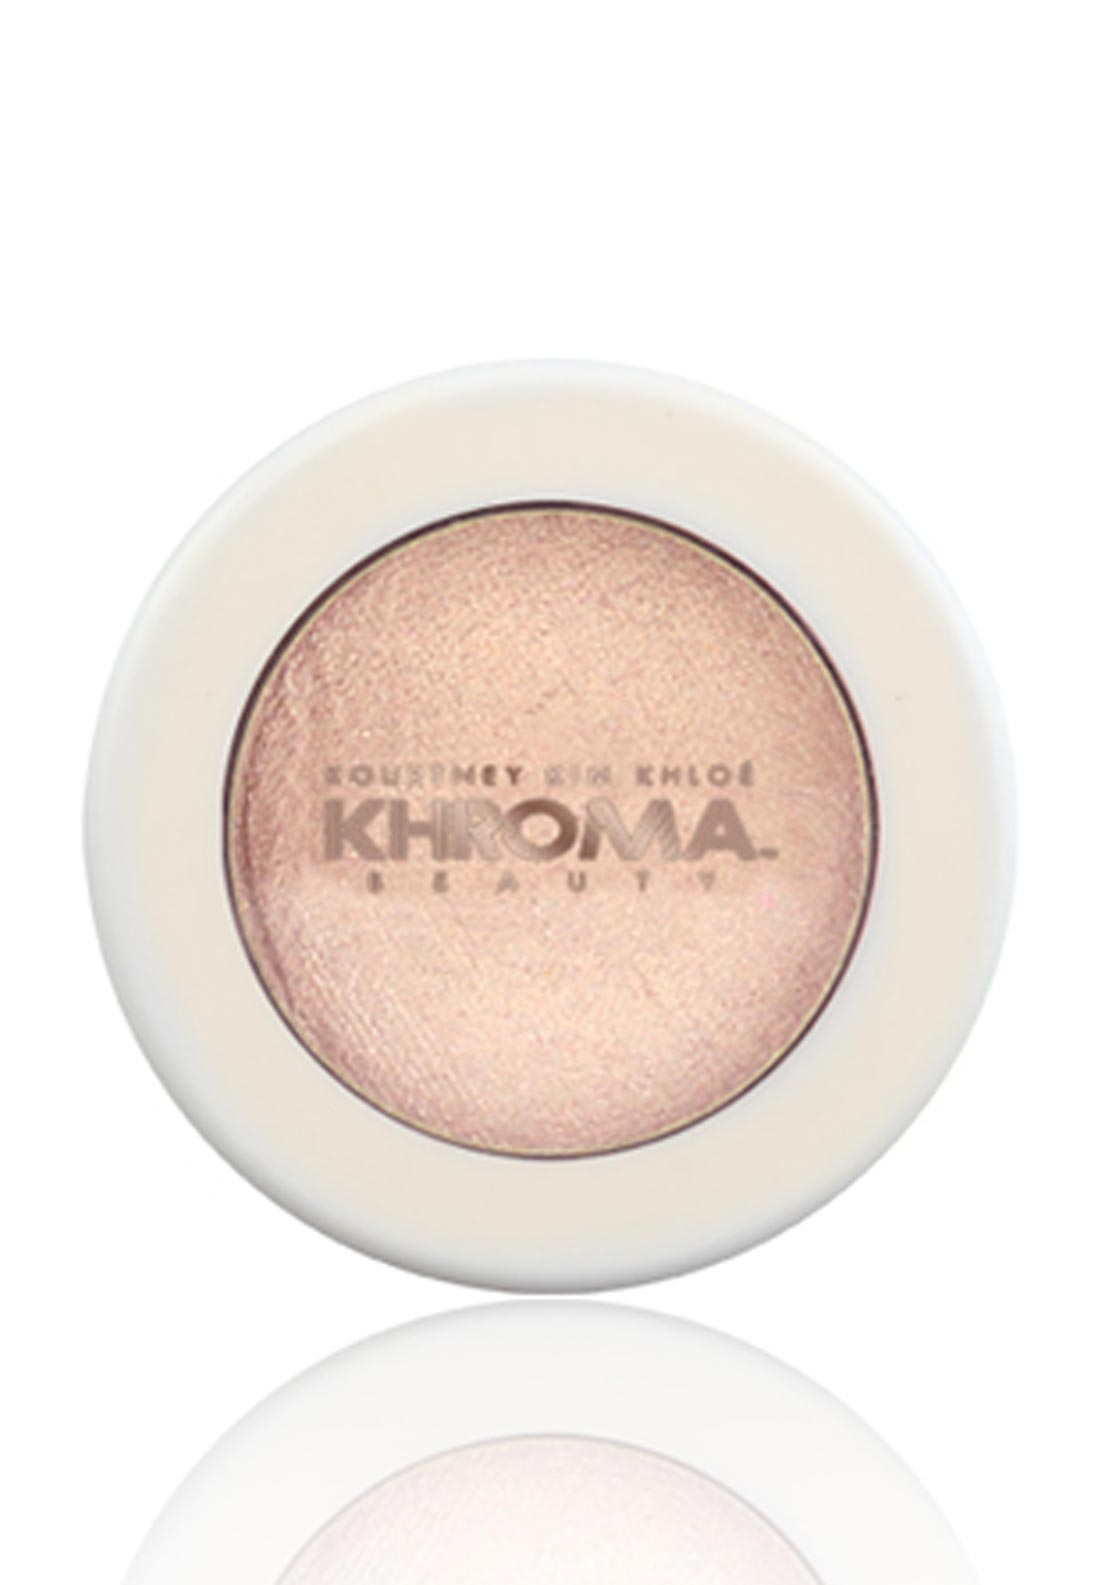 Kardashian Beauty Instant Spotlight Powder, Burnish